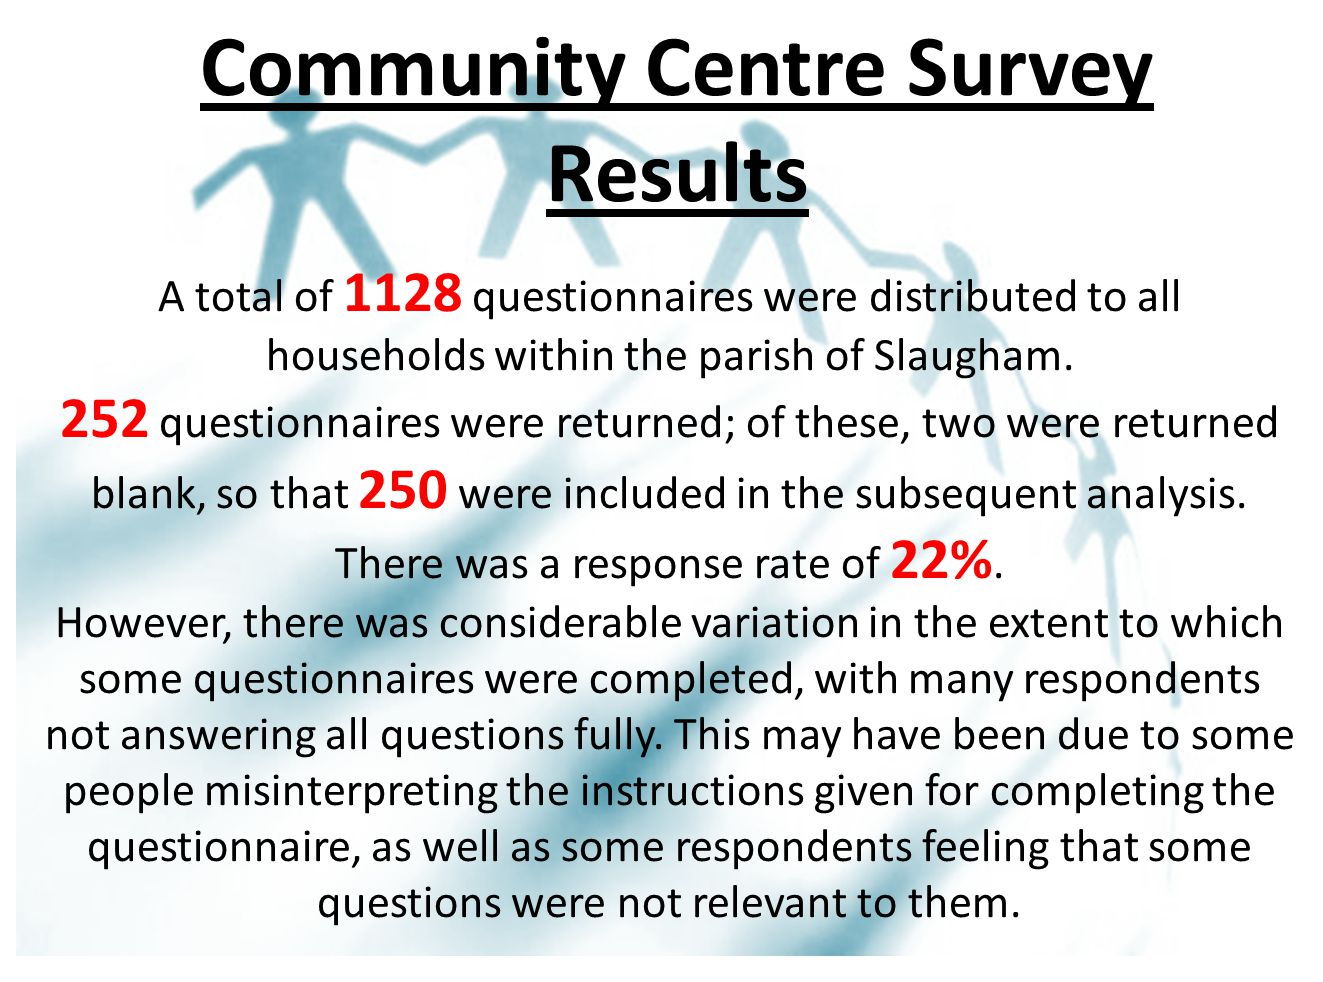 A total of 1128 questionnaires were distributed to all households within the parish of Slaugham.